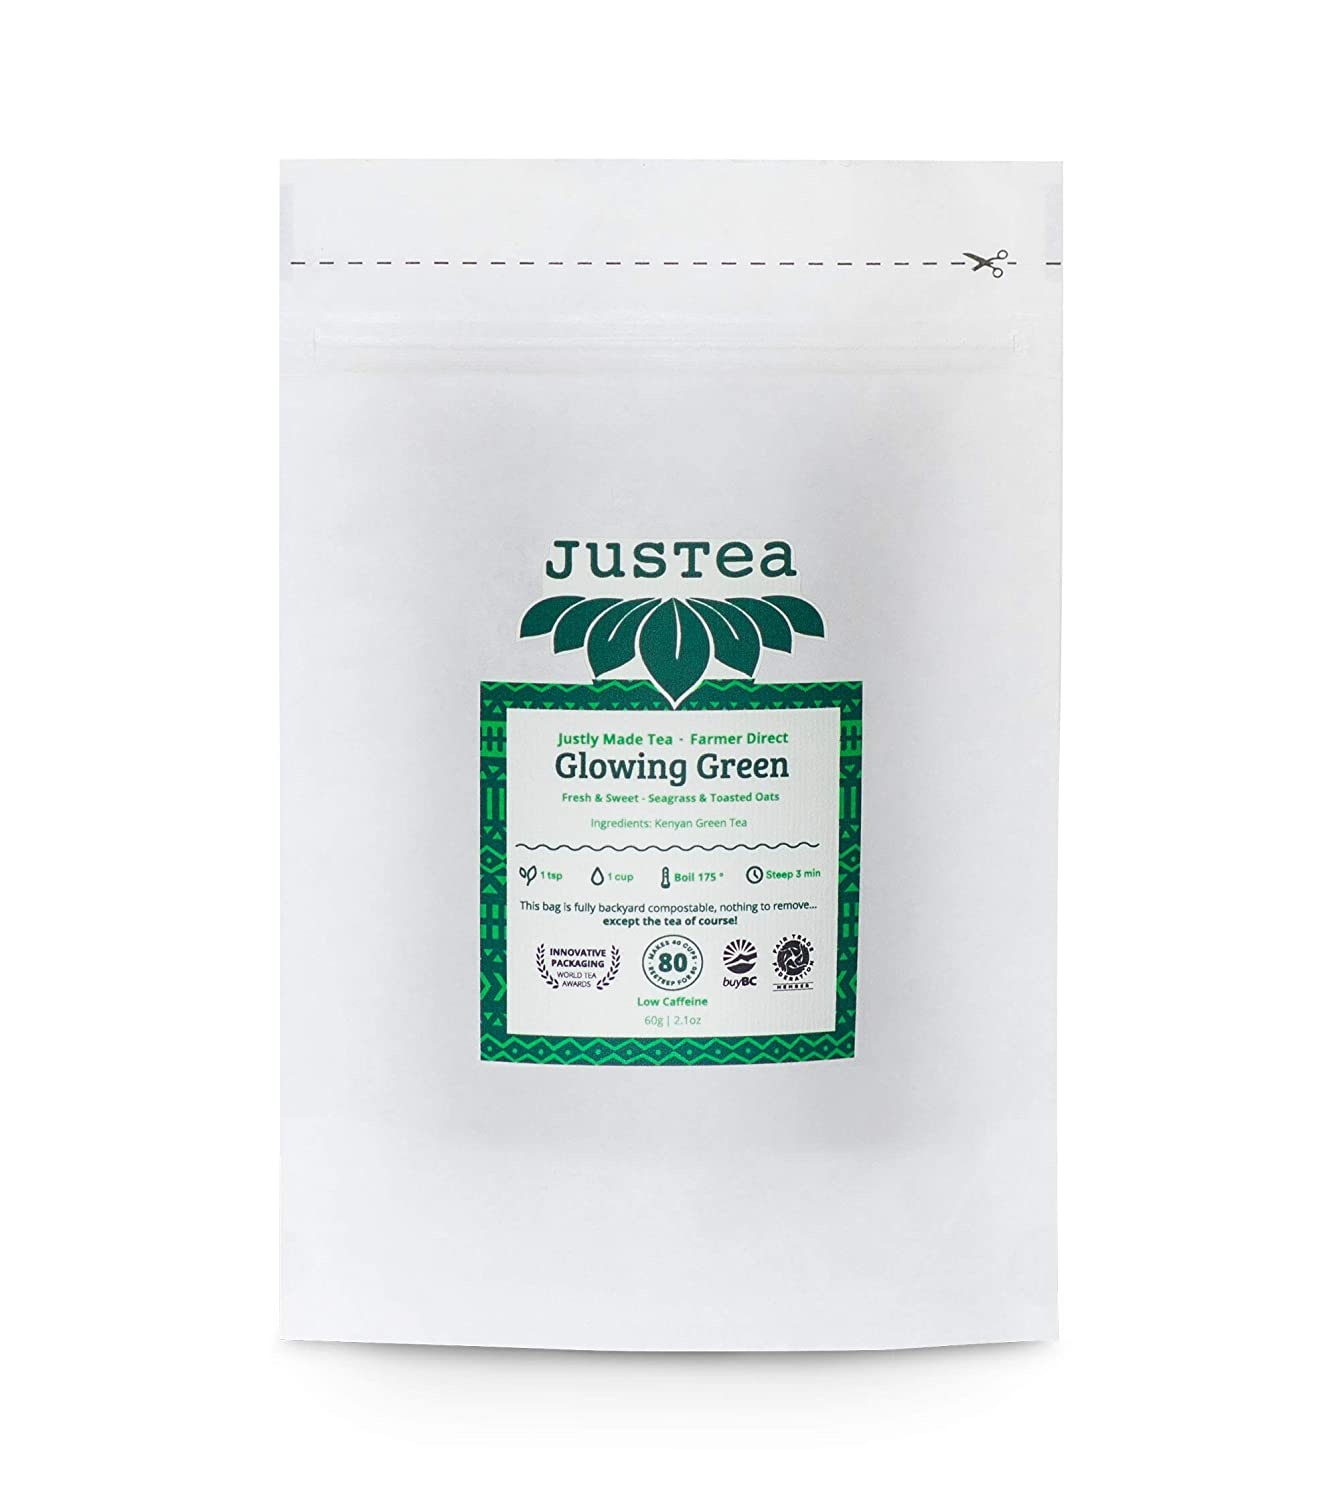 JusTea GLOWING GREEN Loose Leaf Green a in Compostable Phoenix Mall Tea Large discharge sale Ref